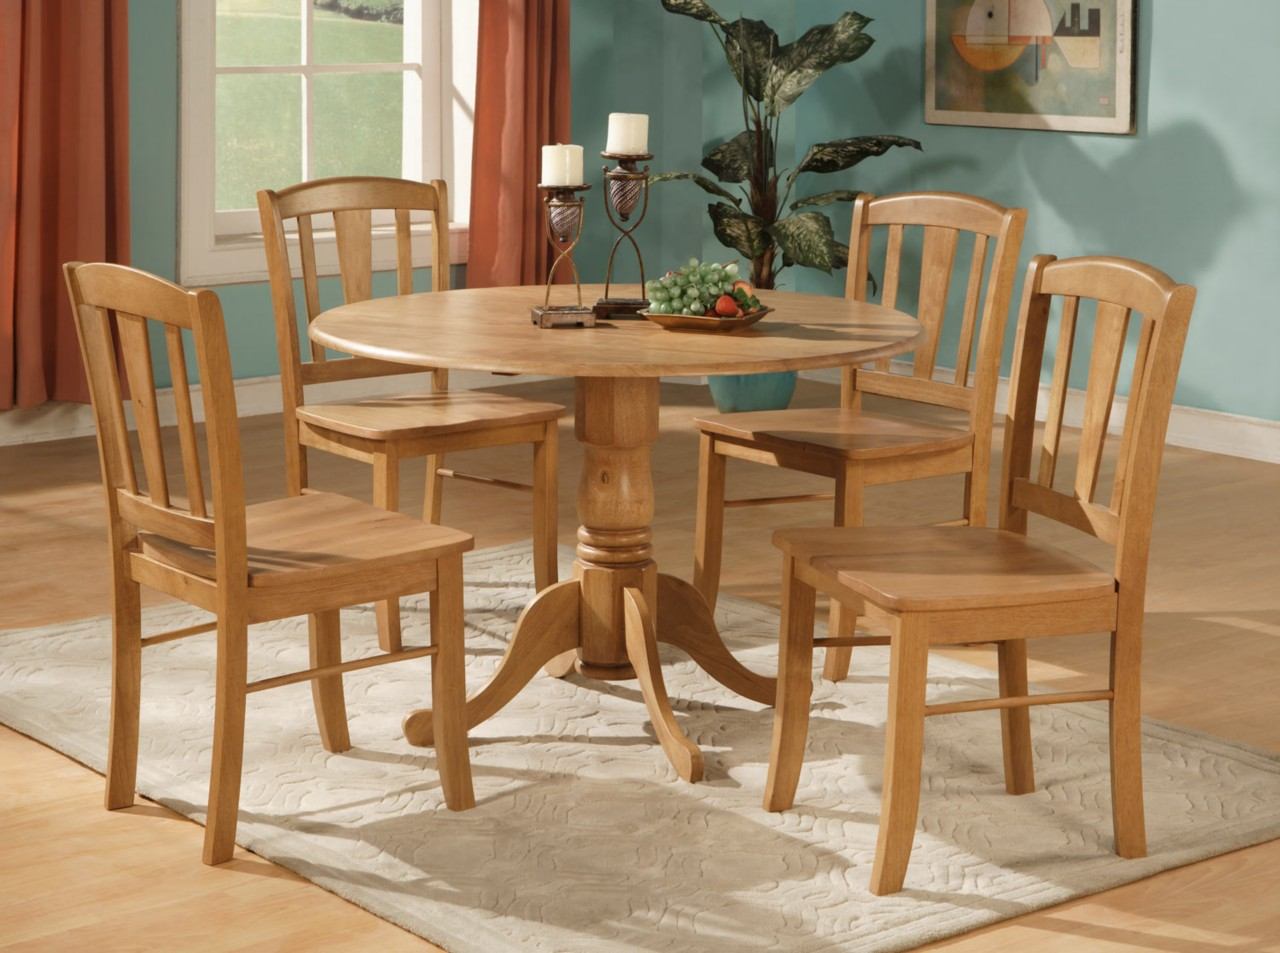 5pc round dinette kitchen dining set table and 4 chairs ebay for Round dining table set for 4